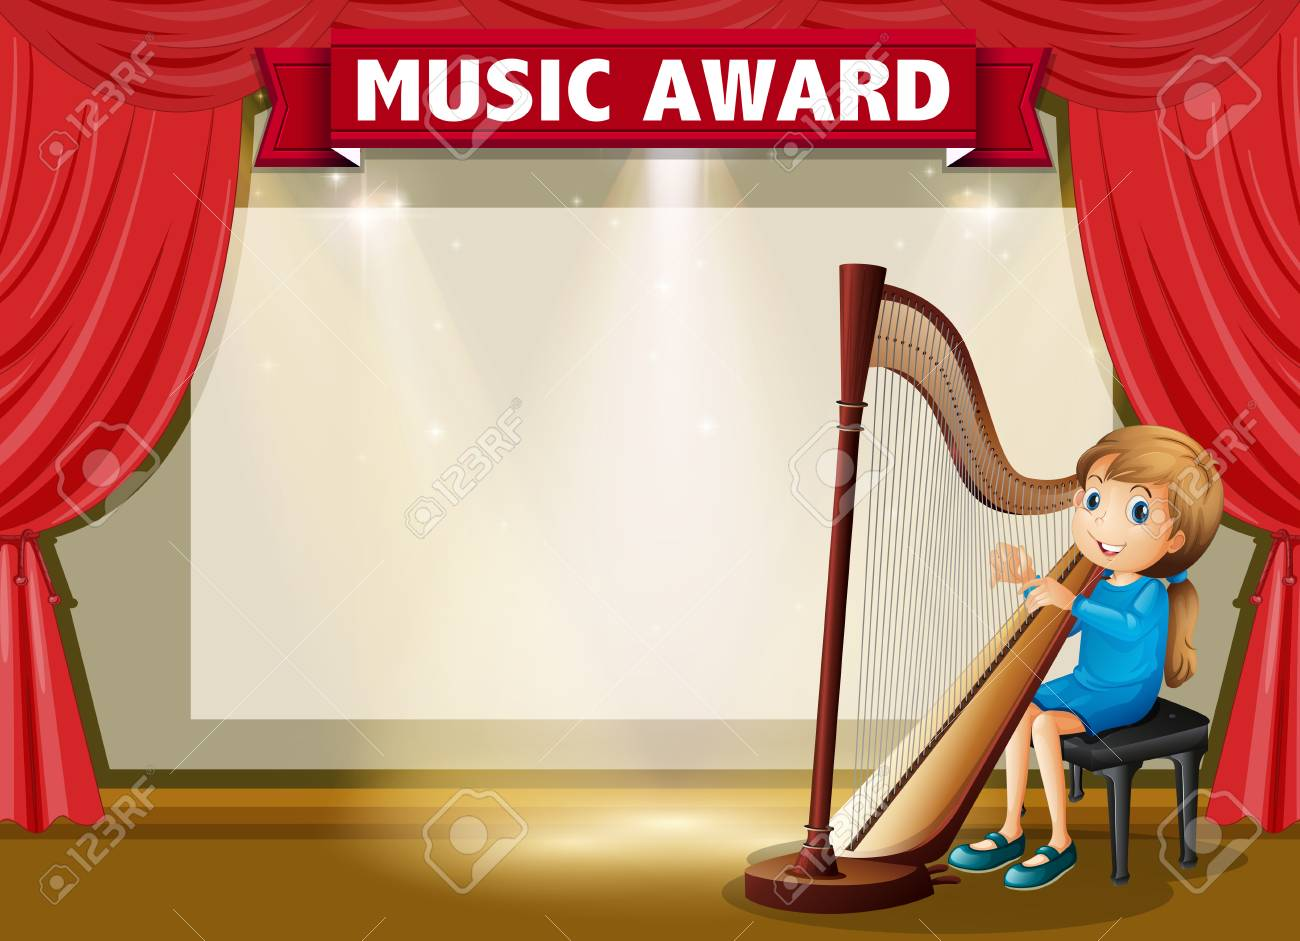 Certificate template for music award illustration royalty free certificate template for music award illustration stock vector 73056617 yelopaper Choice Image